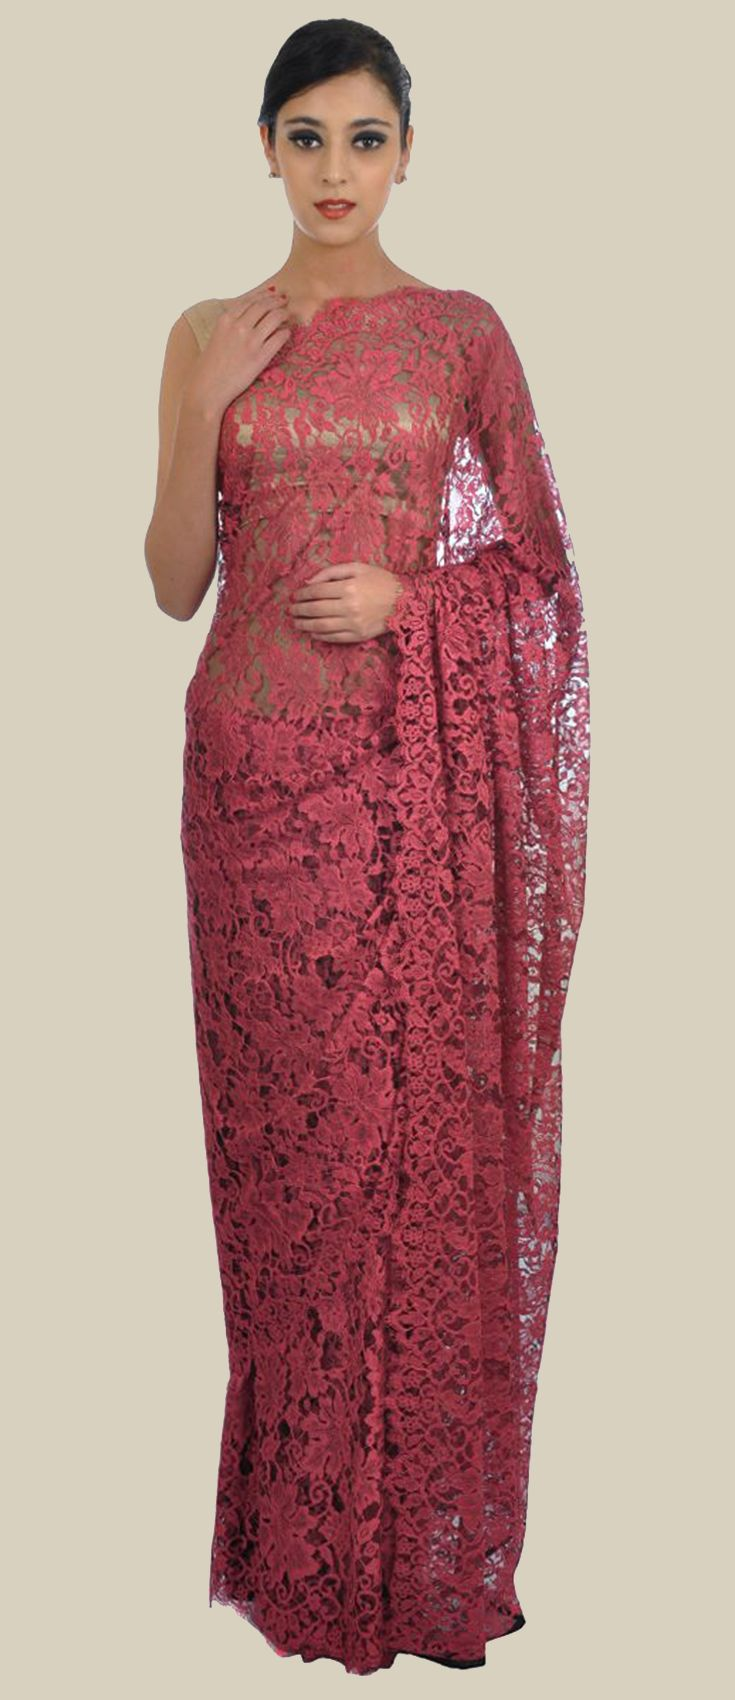 Best 25 Lace Saree Ideas On Pinterest Wedding Blouse Black And Red